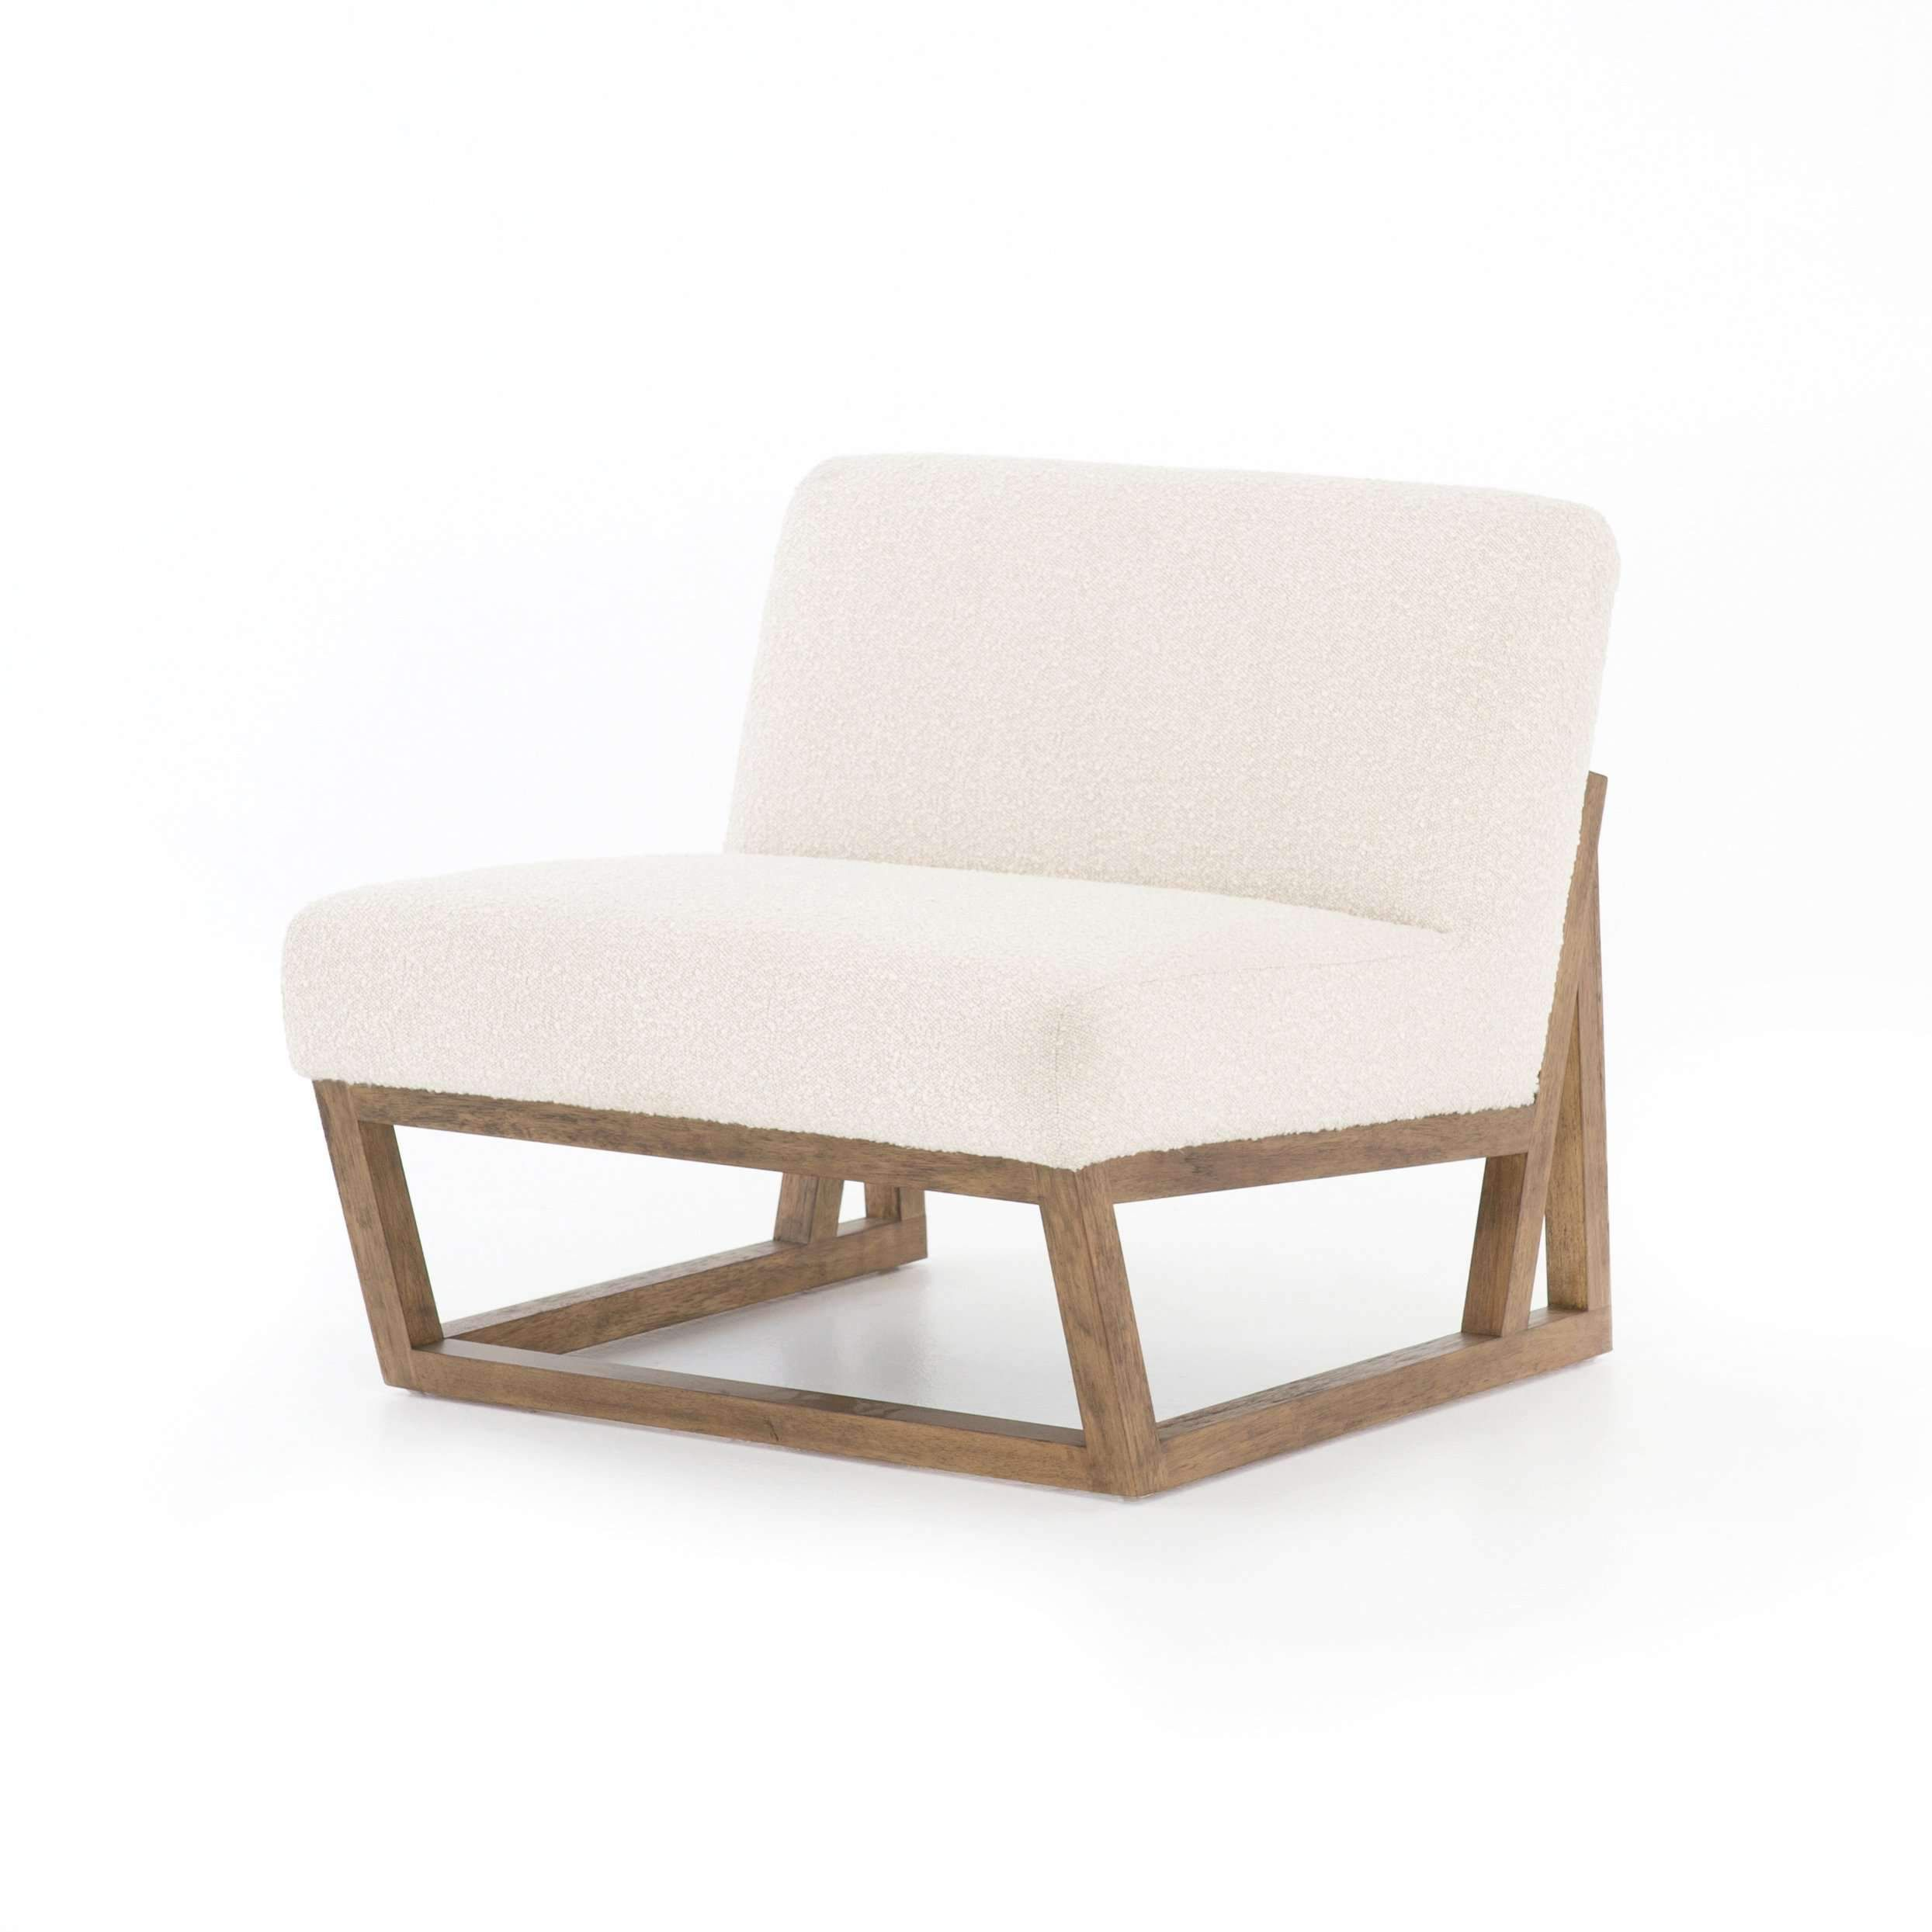 Leonie Chair Knoll Naturaldefault Title Furniture Accent Chairs For Living Room Chair